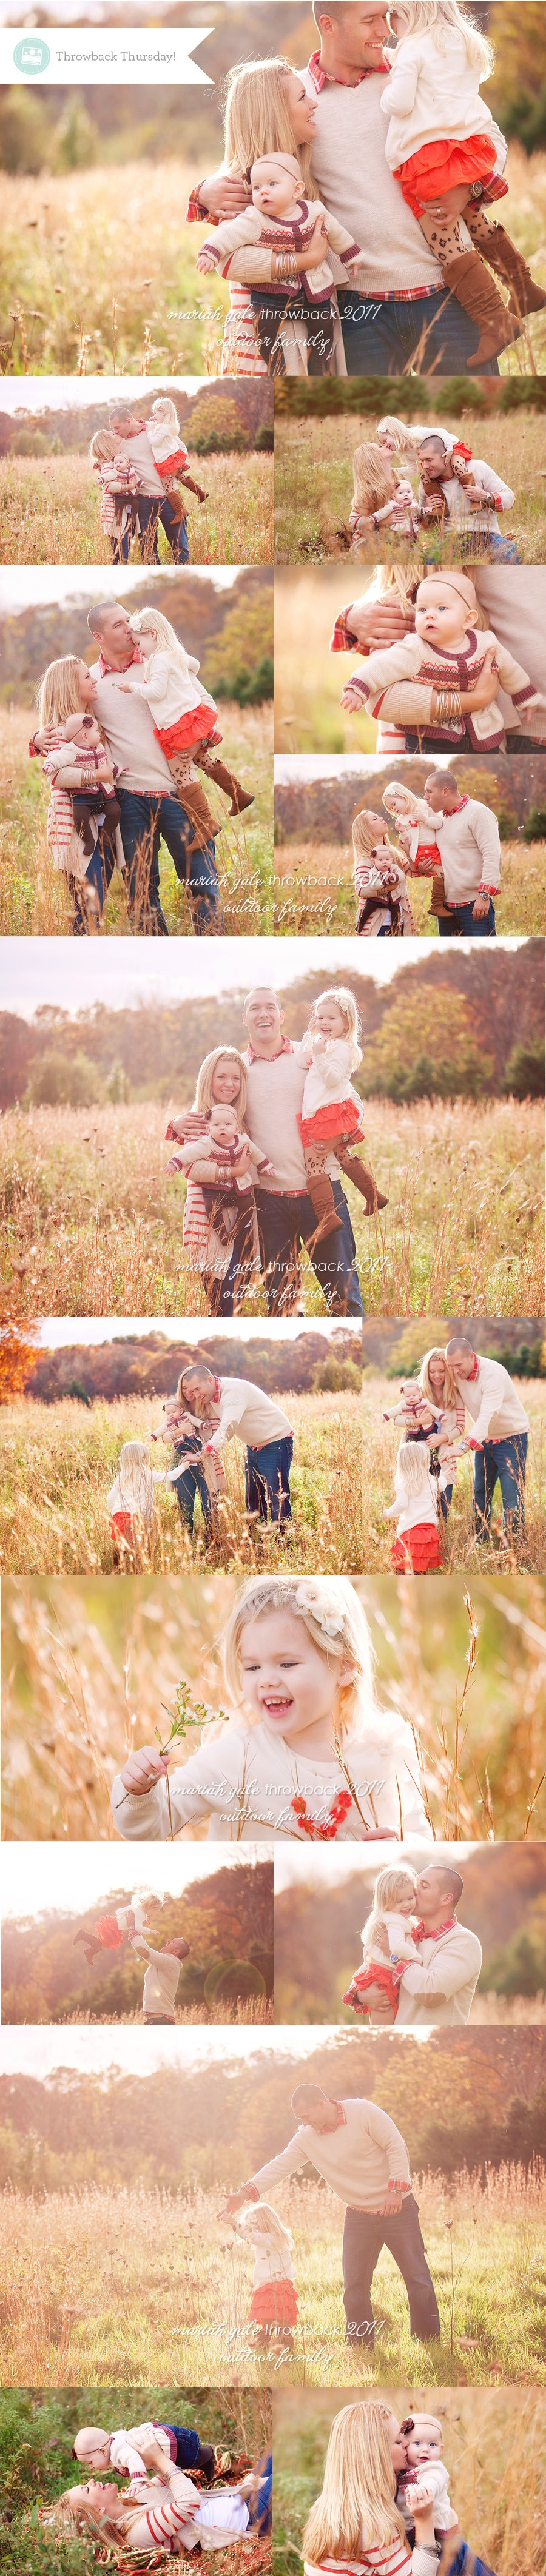 rhode island outdoor family photography